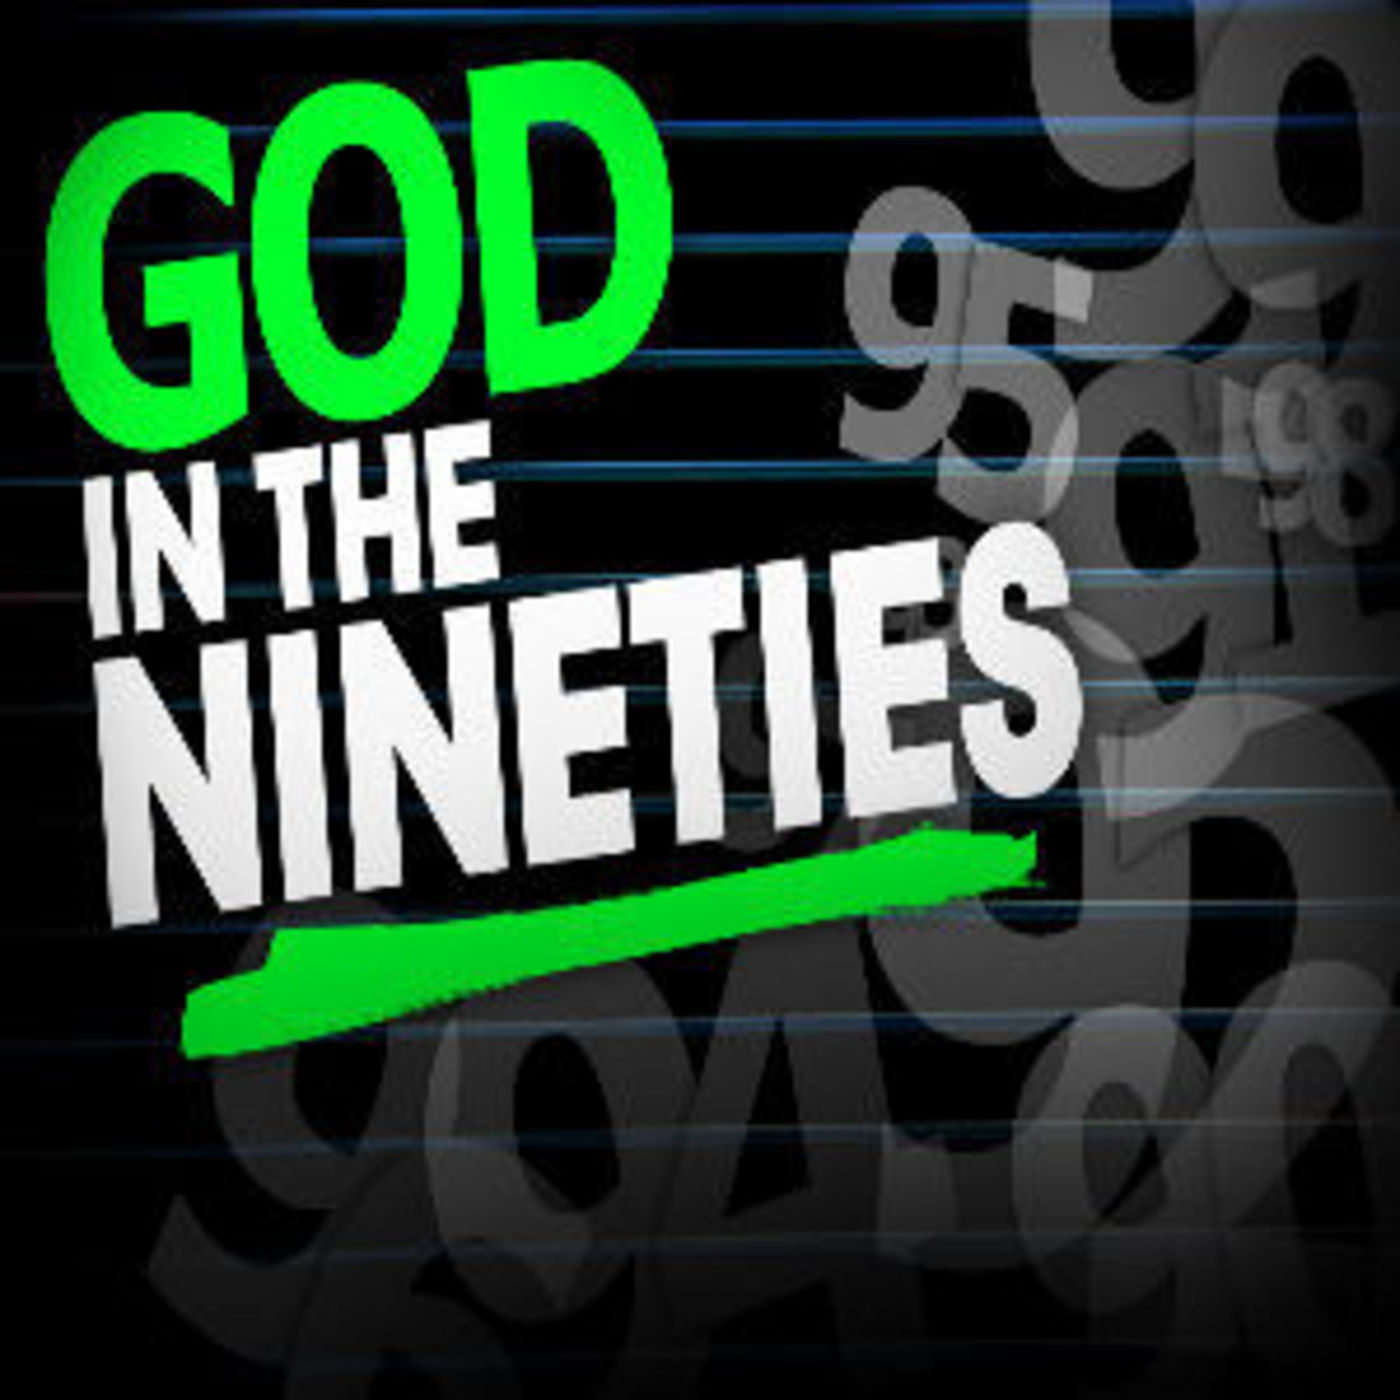 <![CDATA[Park Valley Church - God In the Nineties]]>